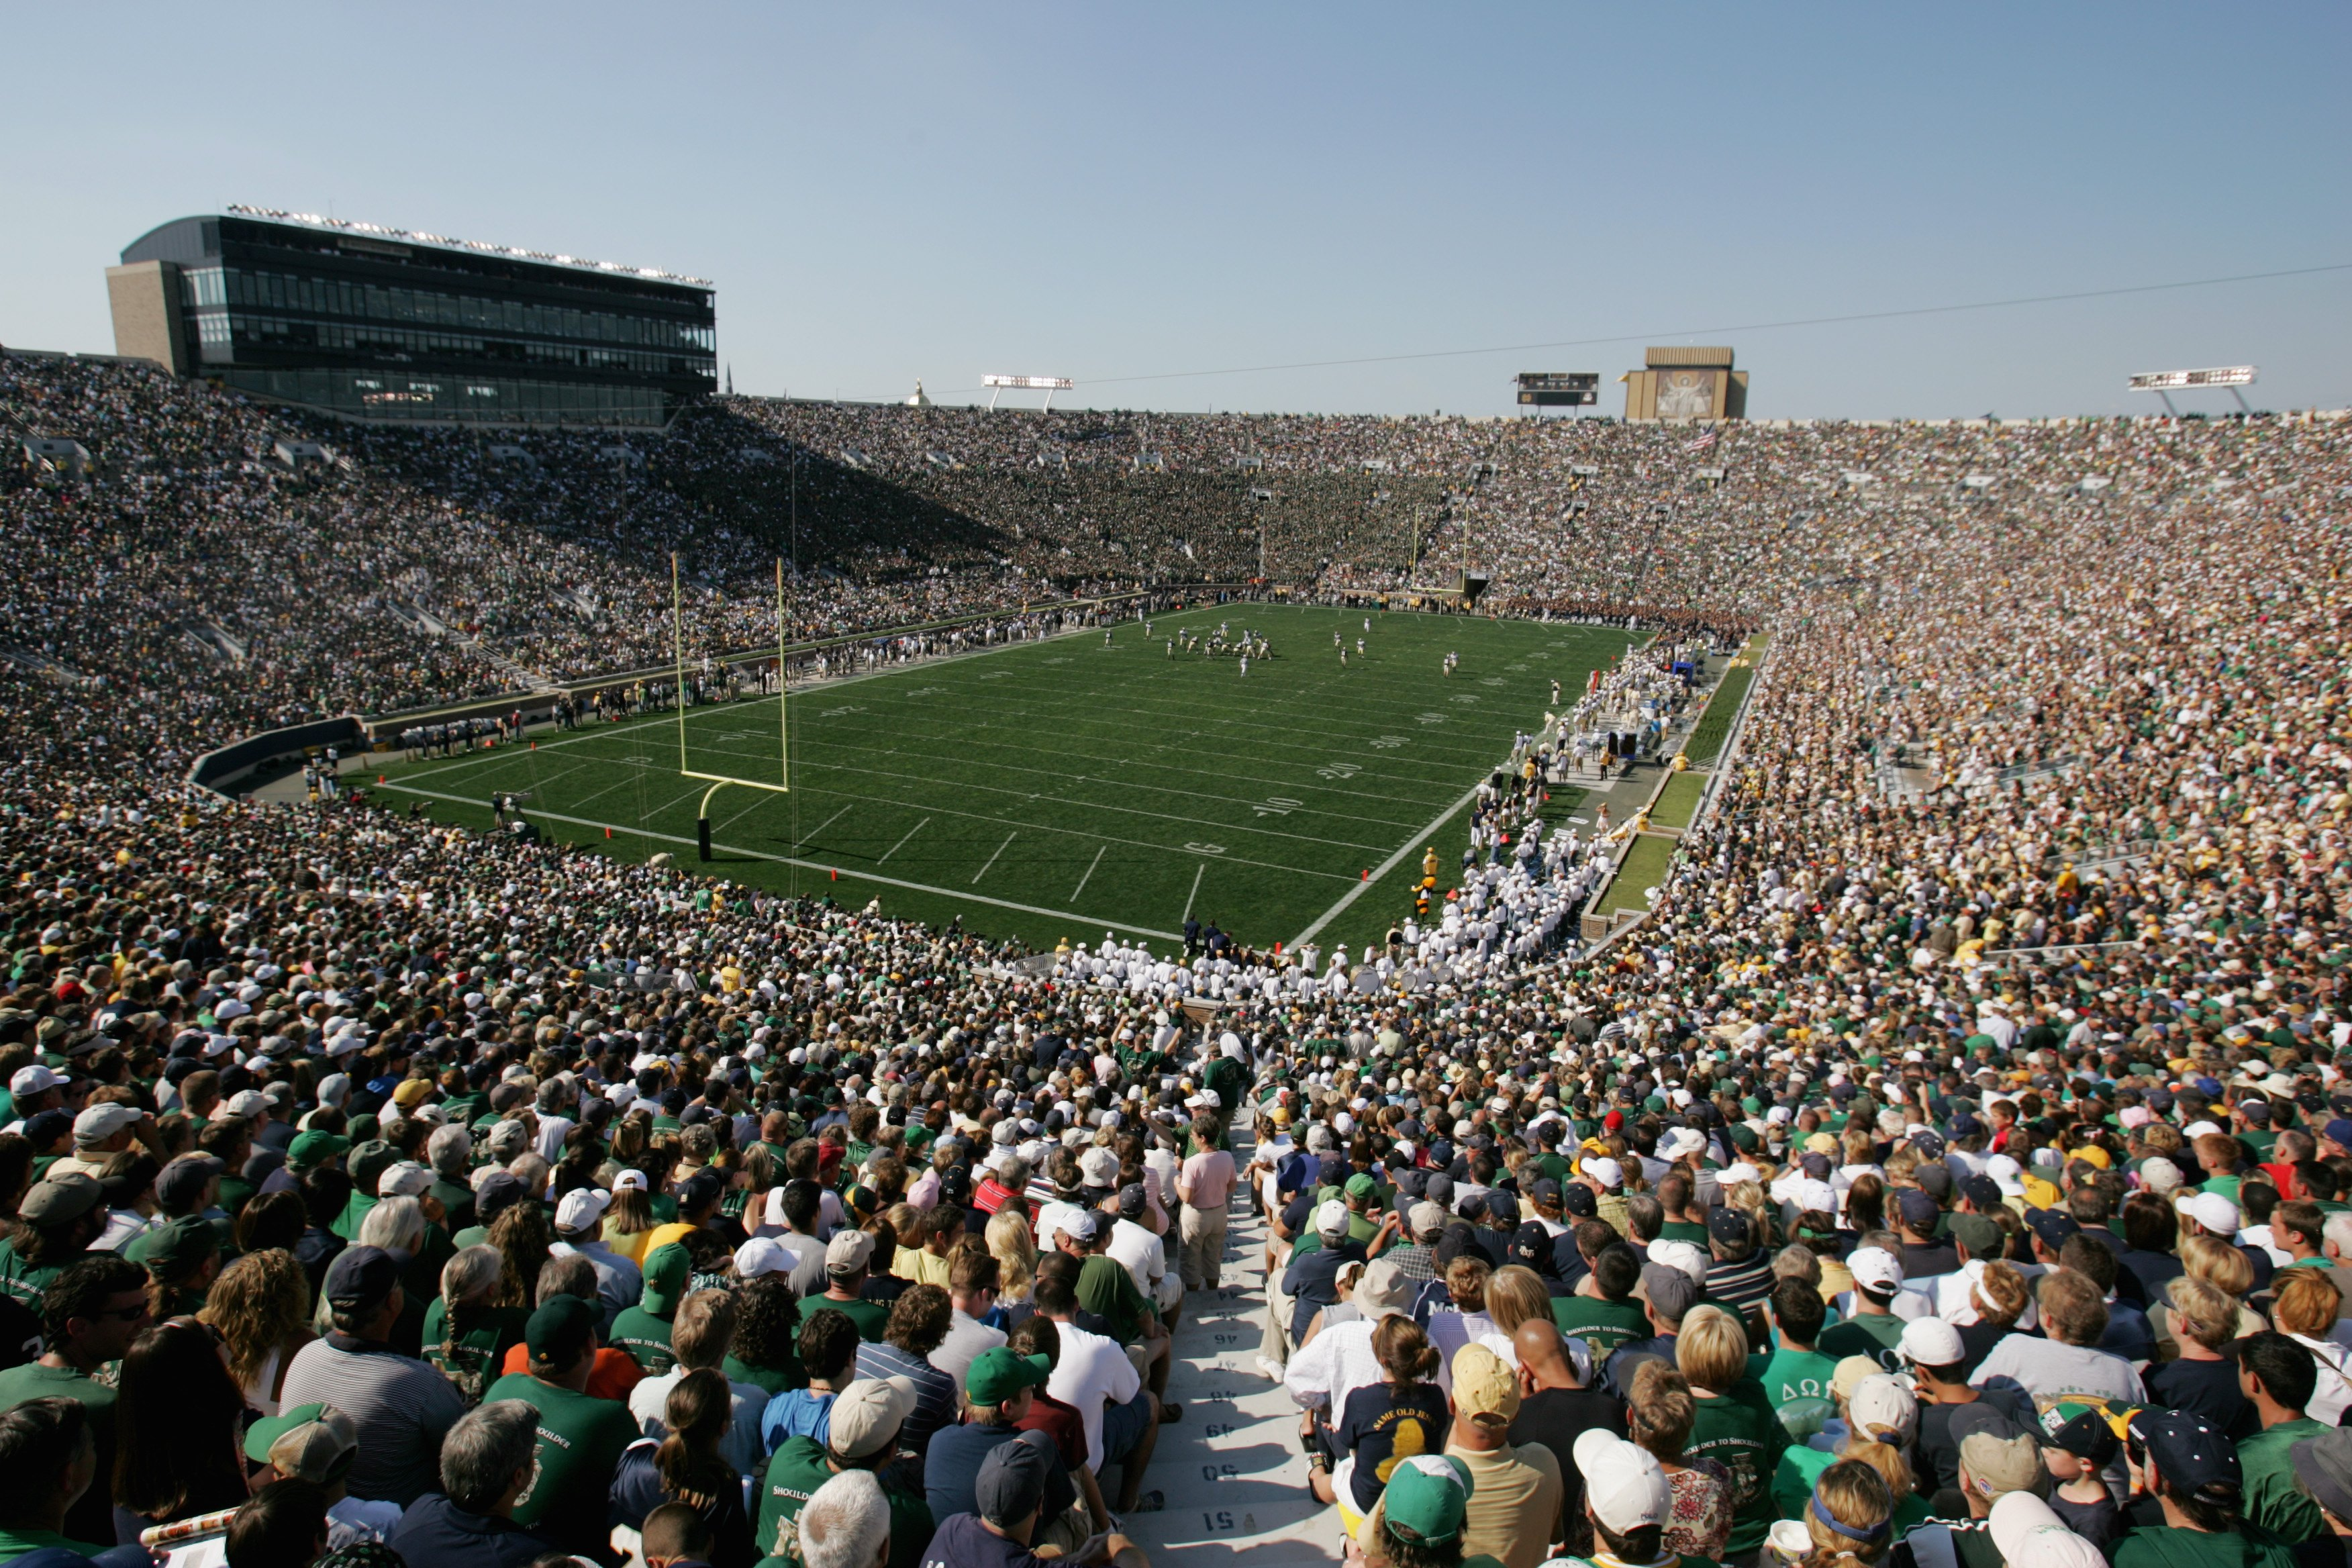 SOUTH BEND, IN - SEPTEMBER 01:  General view of the Notre Dame campus during the game between the Notre Dame Fighting Irish and the Georgia Tech Yellow Jackets on September 1, 2007 at Notre Dame Stadium in South Bend, Indiana. (Photo by Jonathan Daniel/Ge